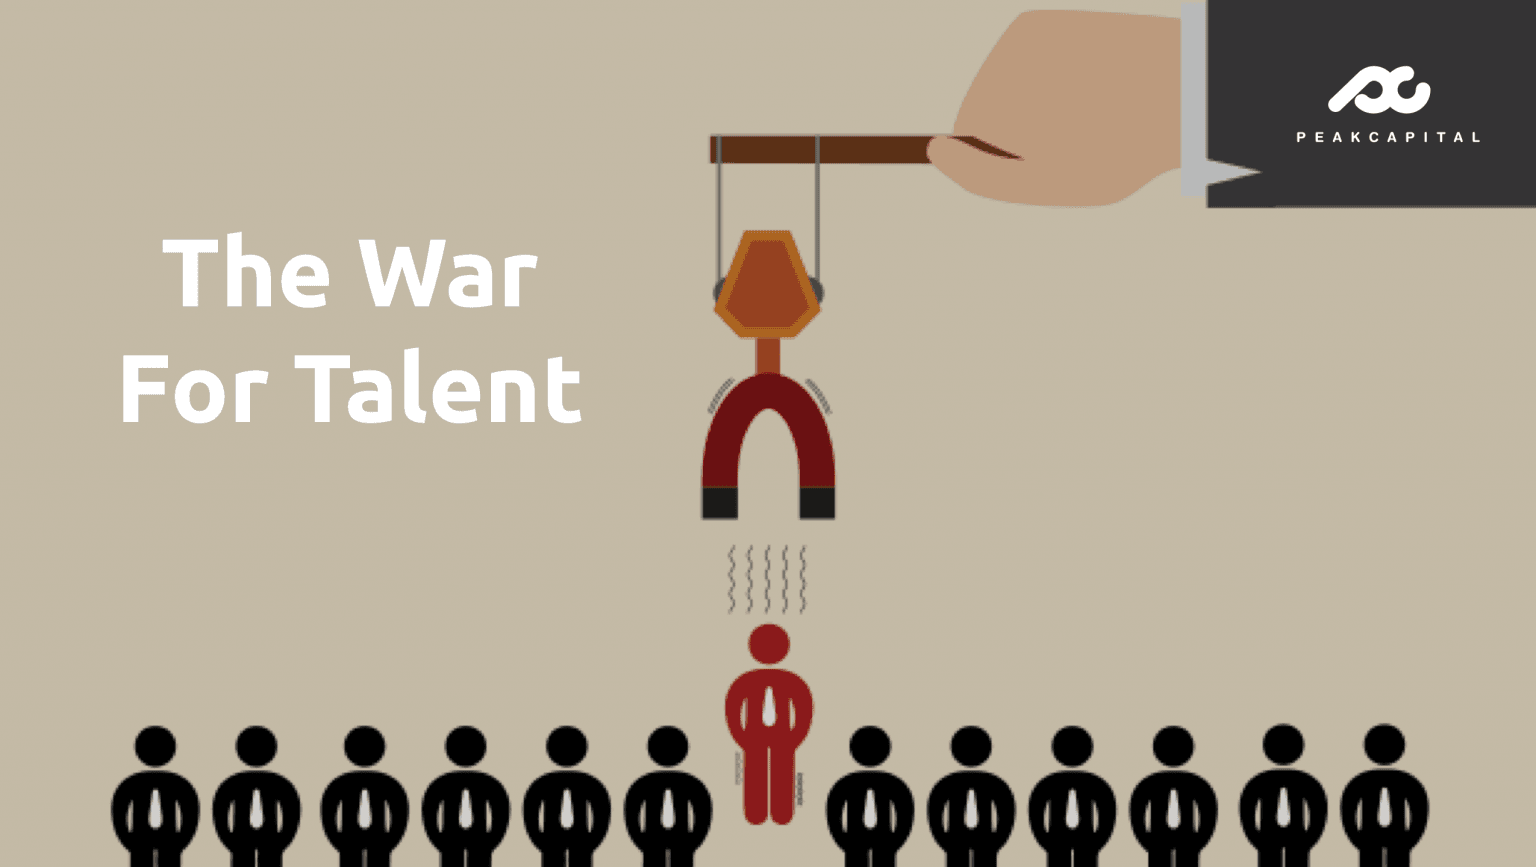 8 learnings on 'the war for talent' from Peak Capital's Founder Sessions